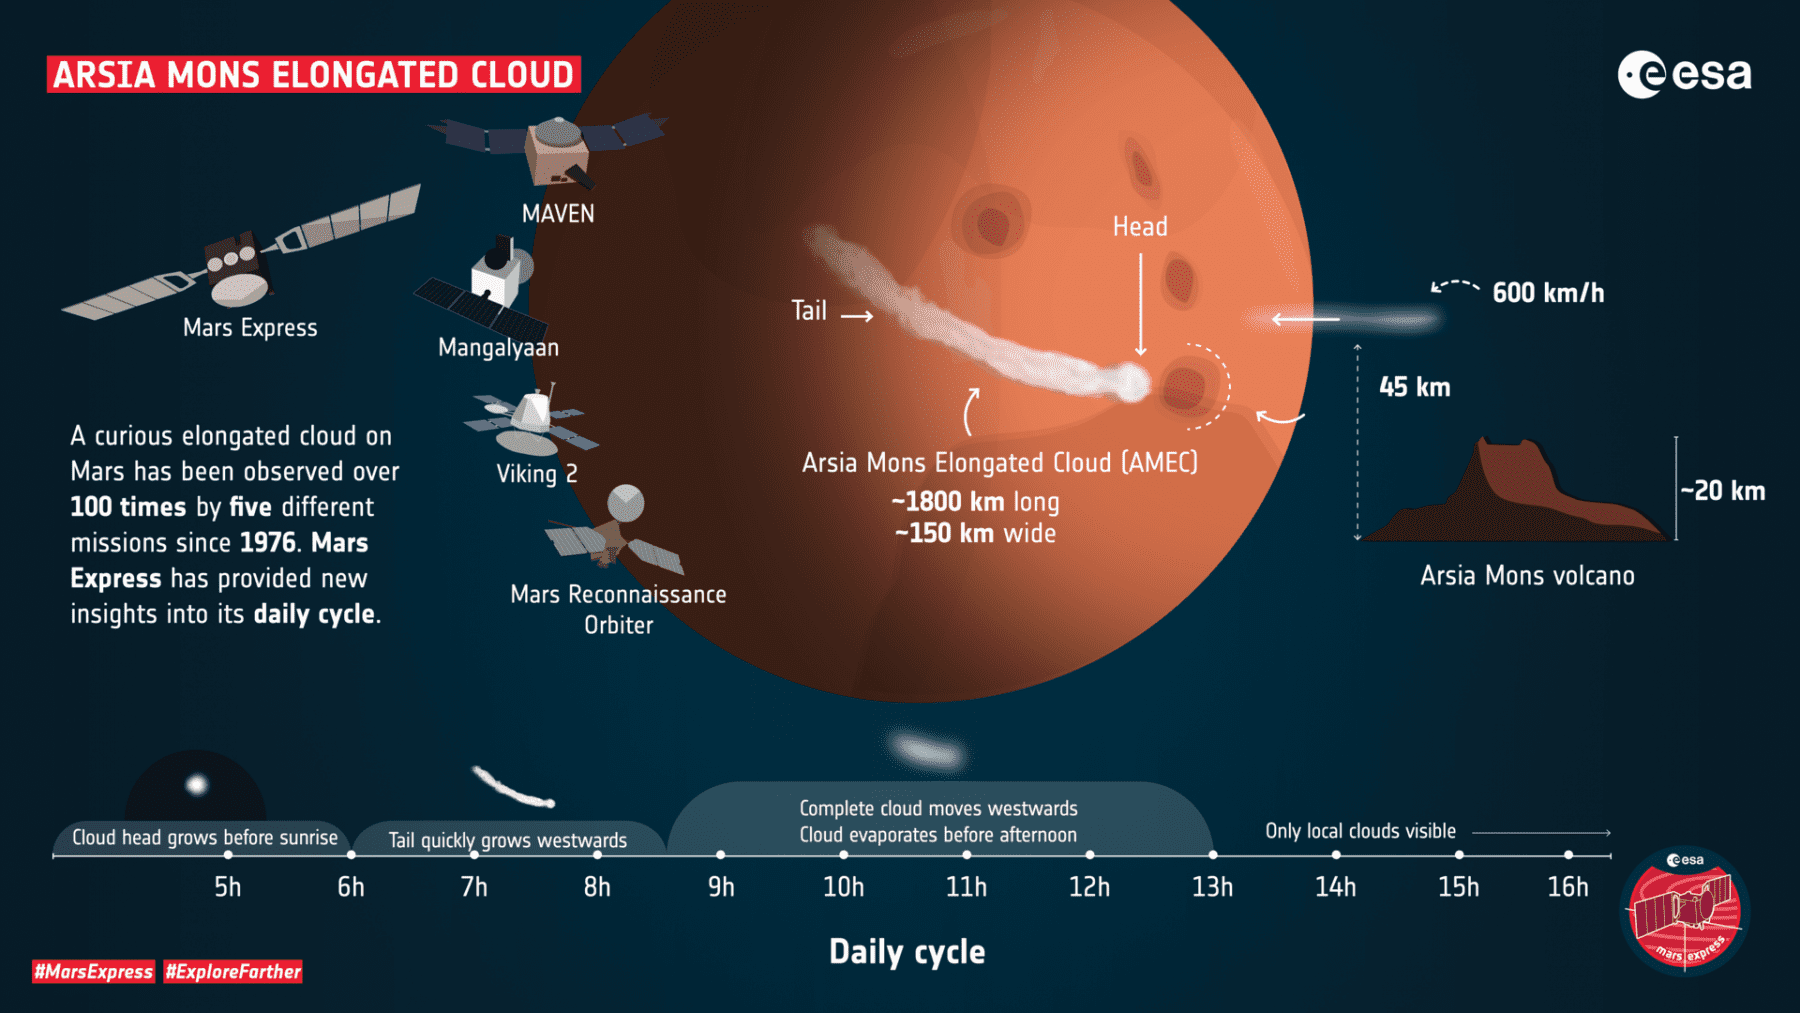 Illustration by ESA explaining the Martian cloud. Credit: ESA